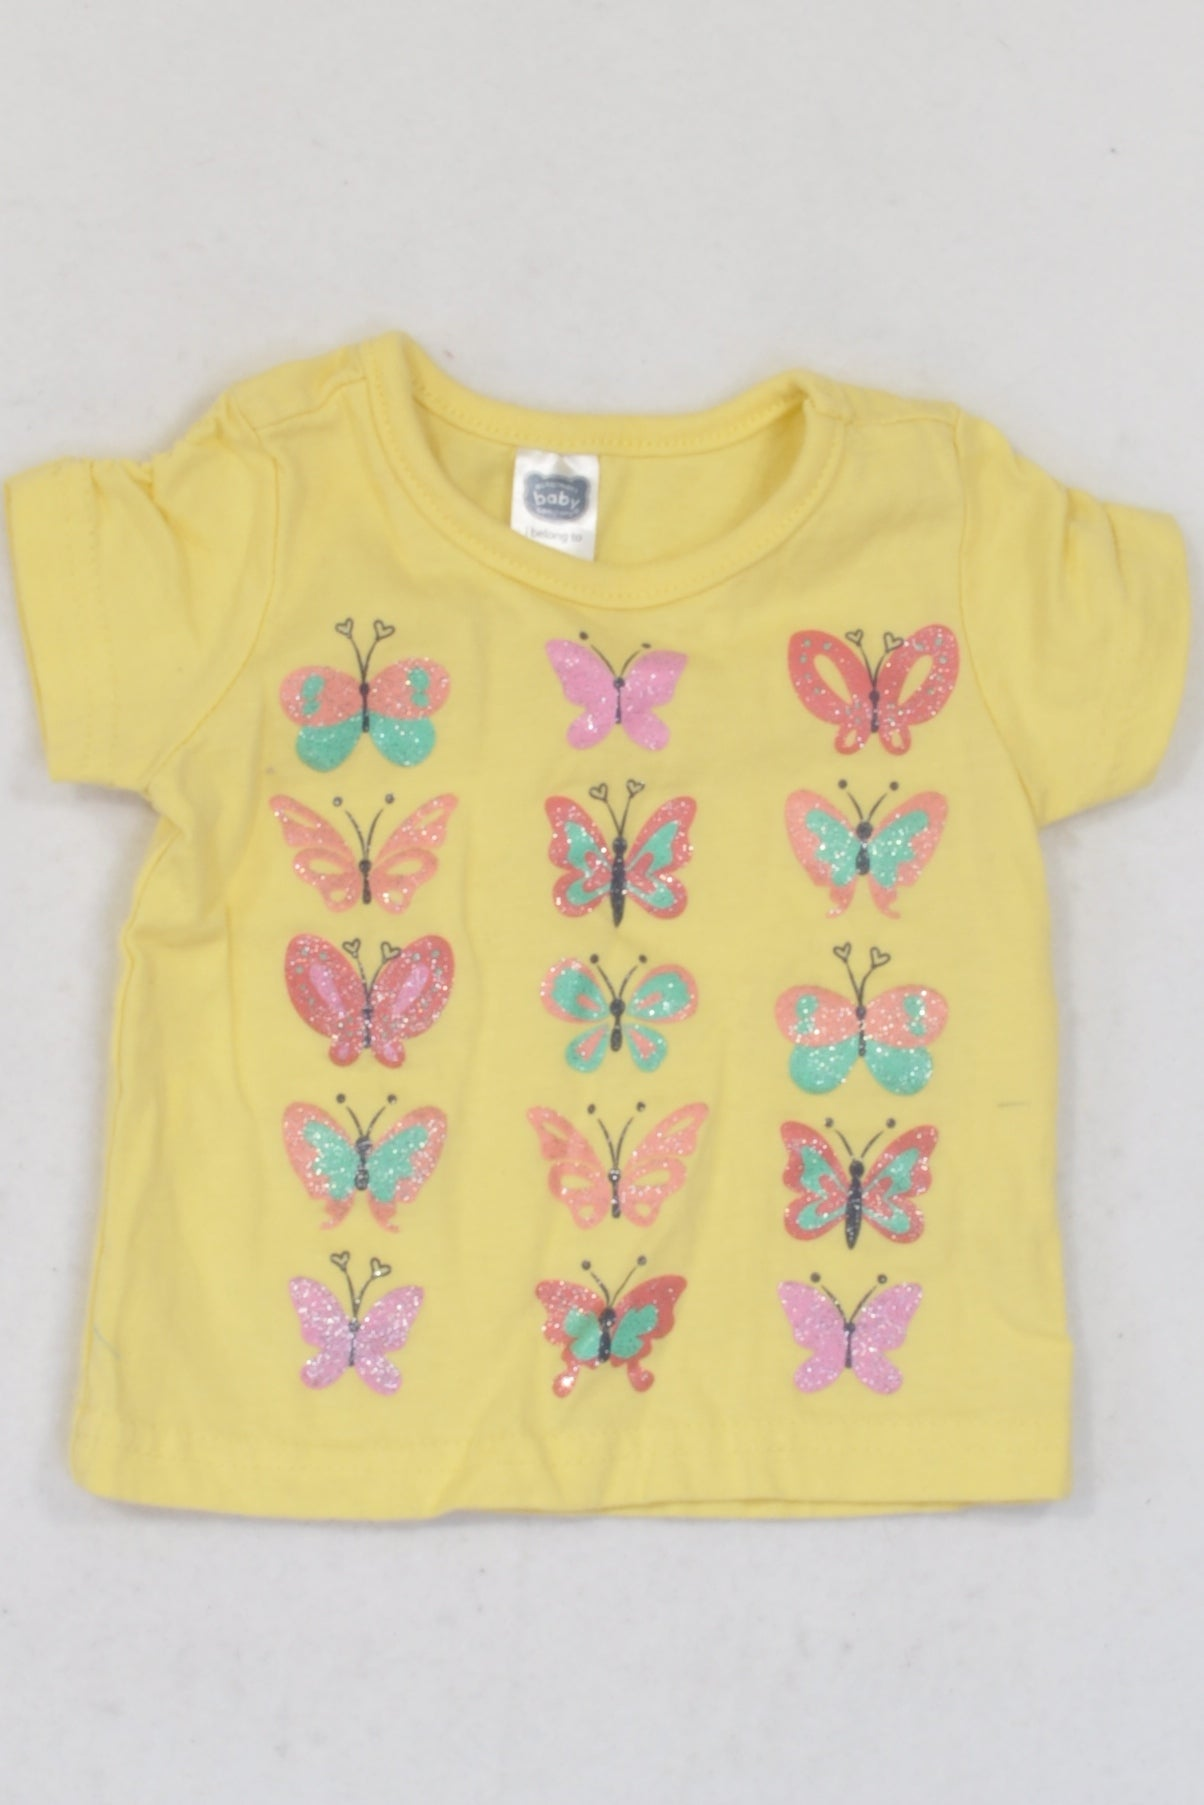 Ackermans Yellow Glitter Butterfly T-shirt Girls 0-3 months